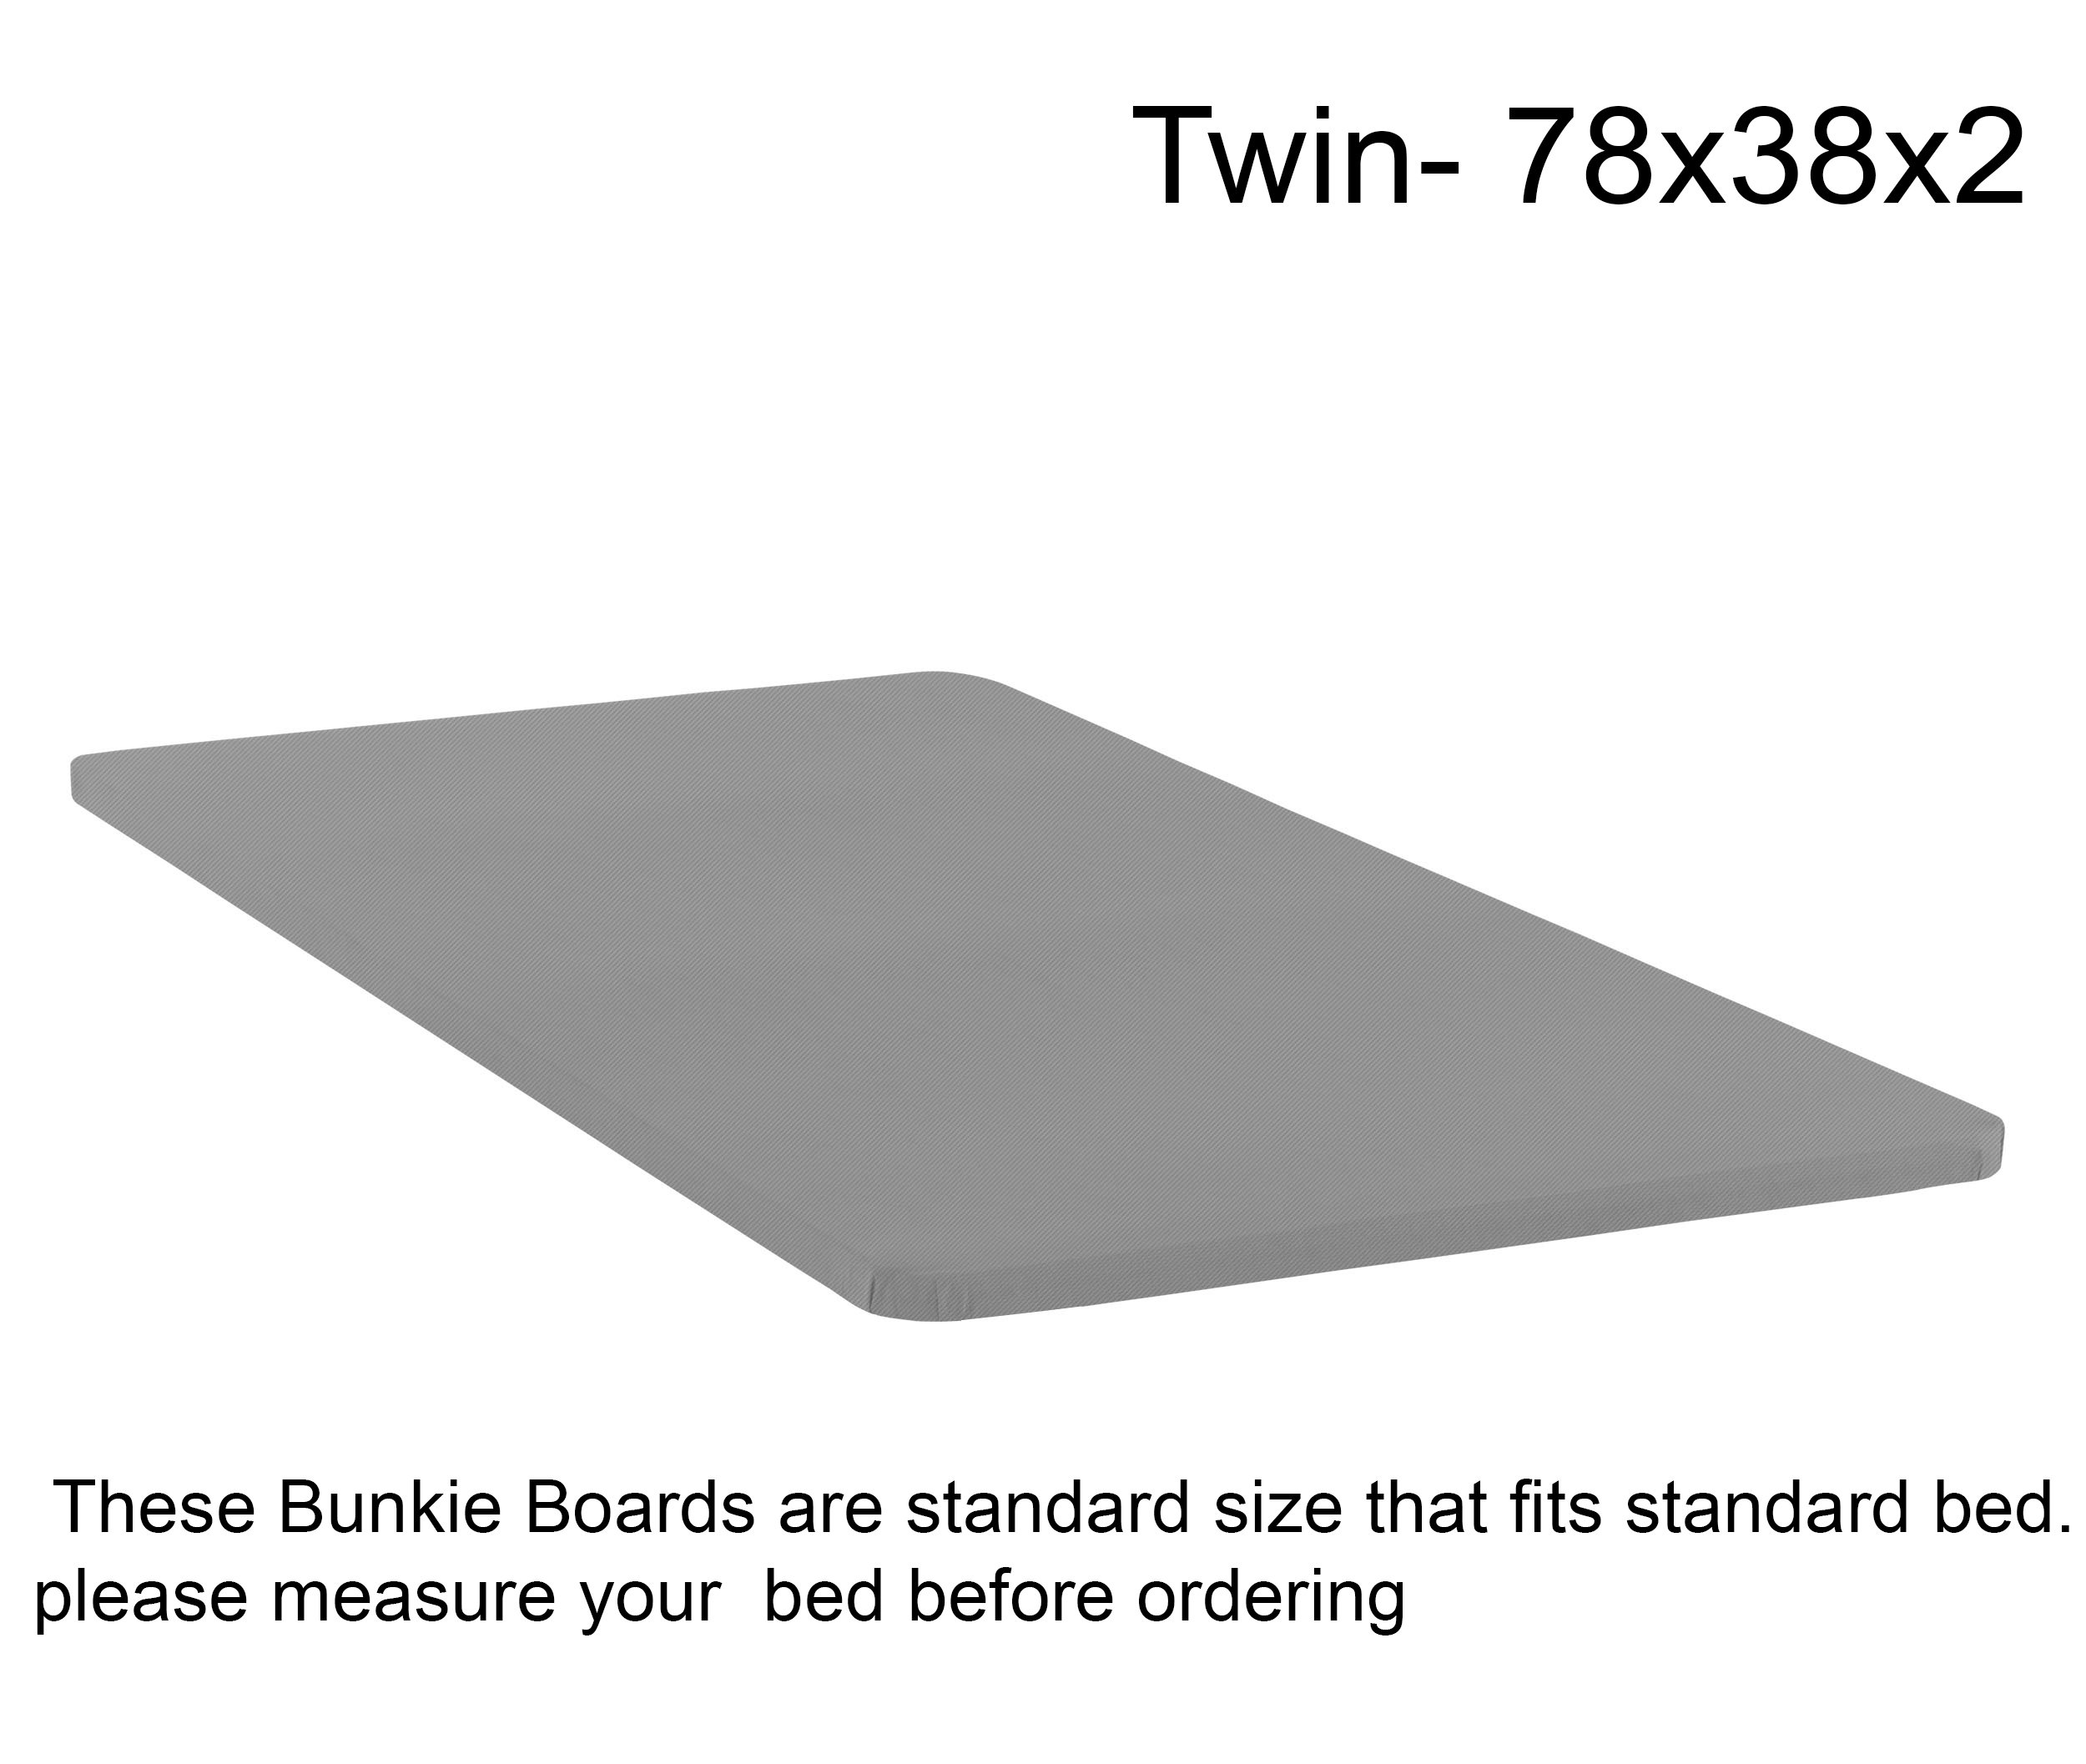 Spring Sleep Fully Assembled 2'' Foundation Bunkie Board Made in USA, Twin by Spring Sleep (Image #2)